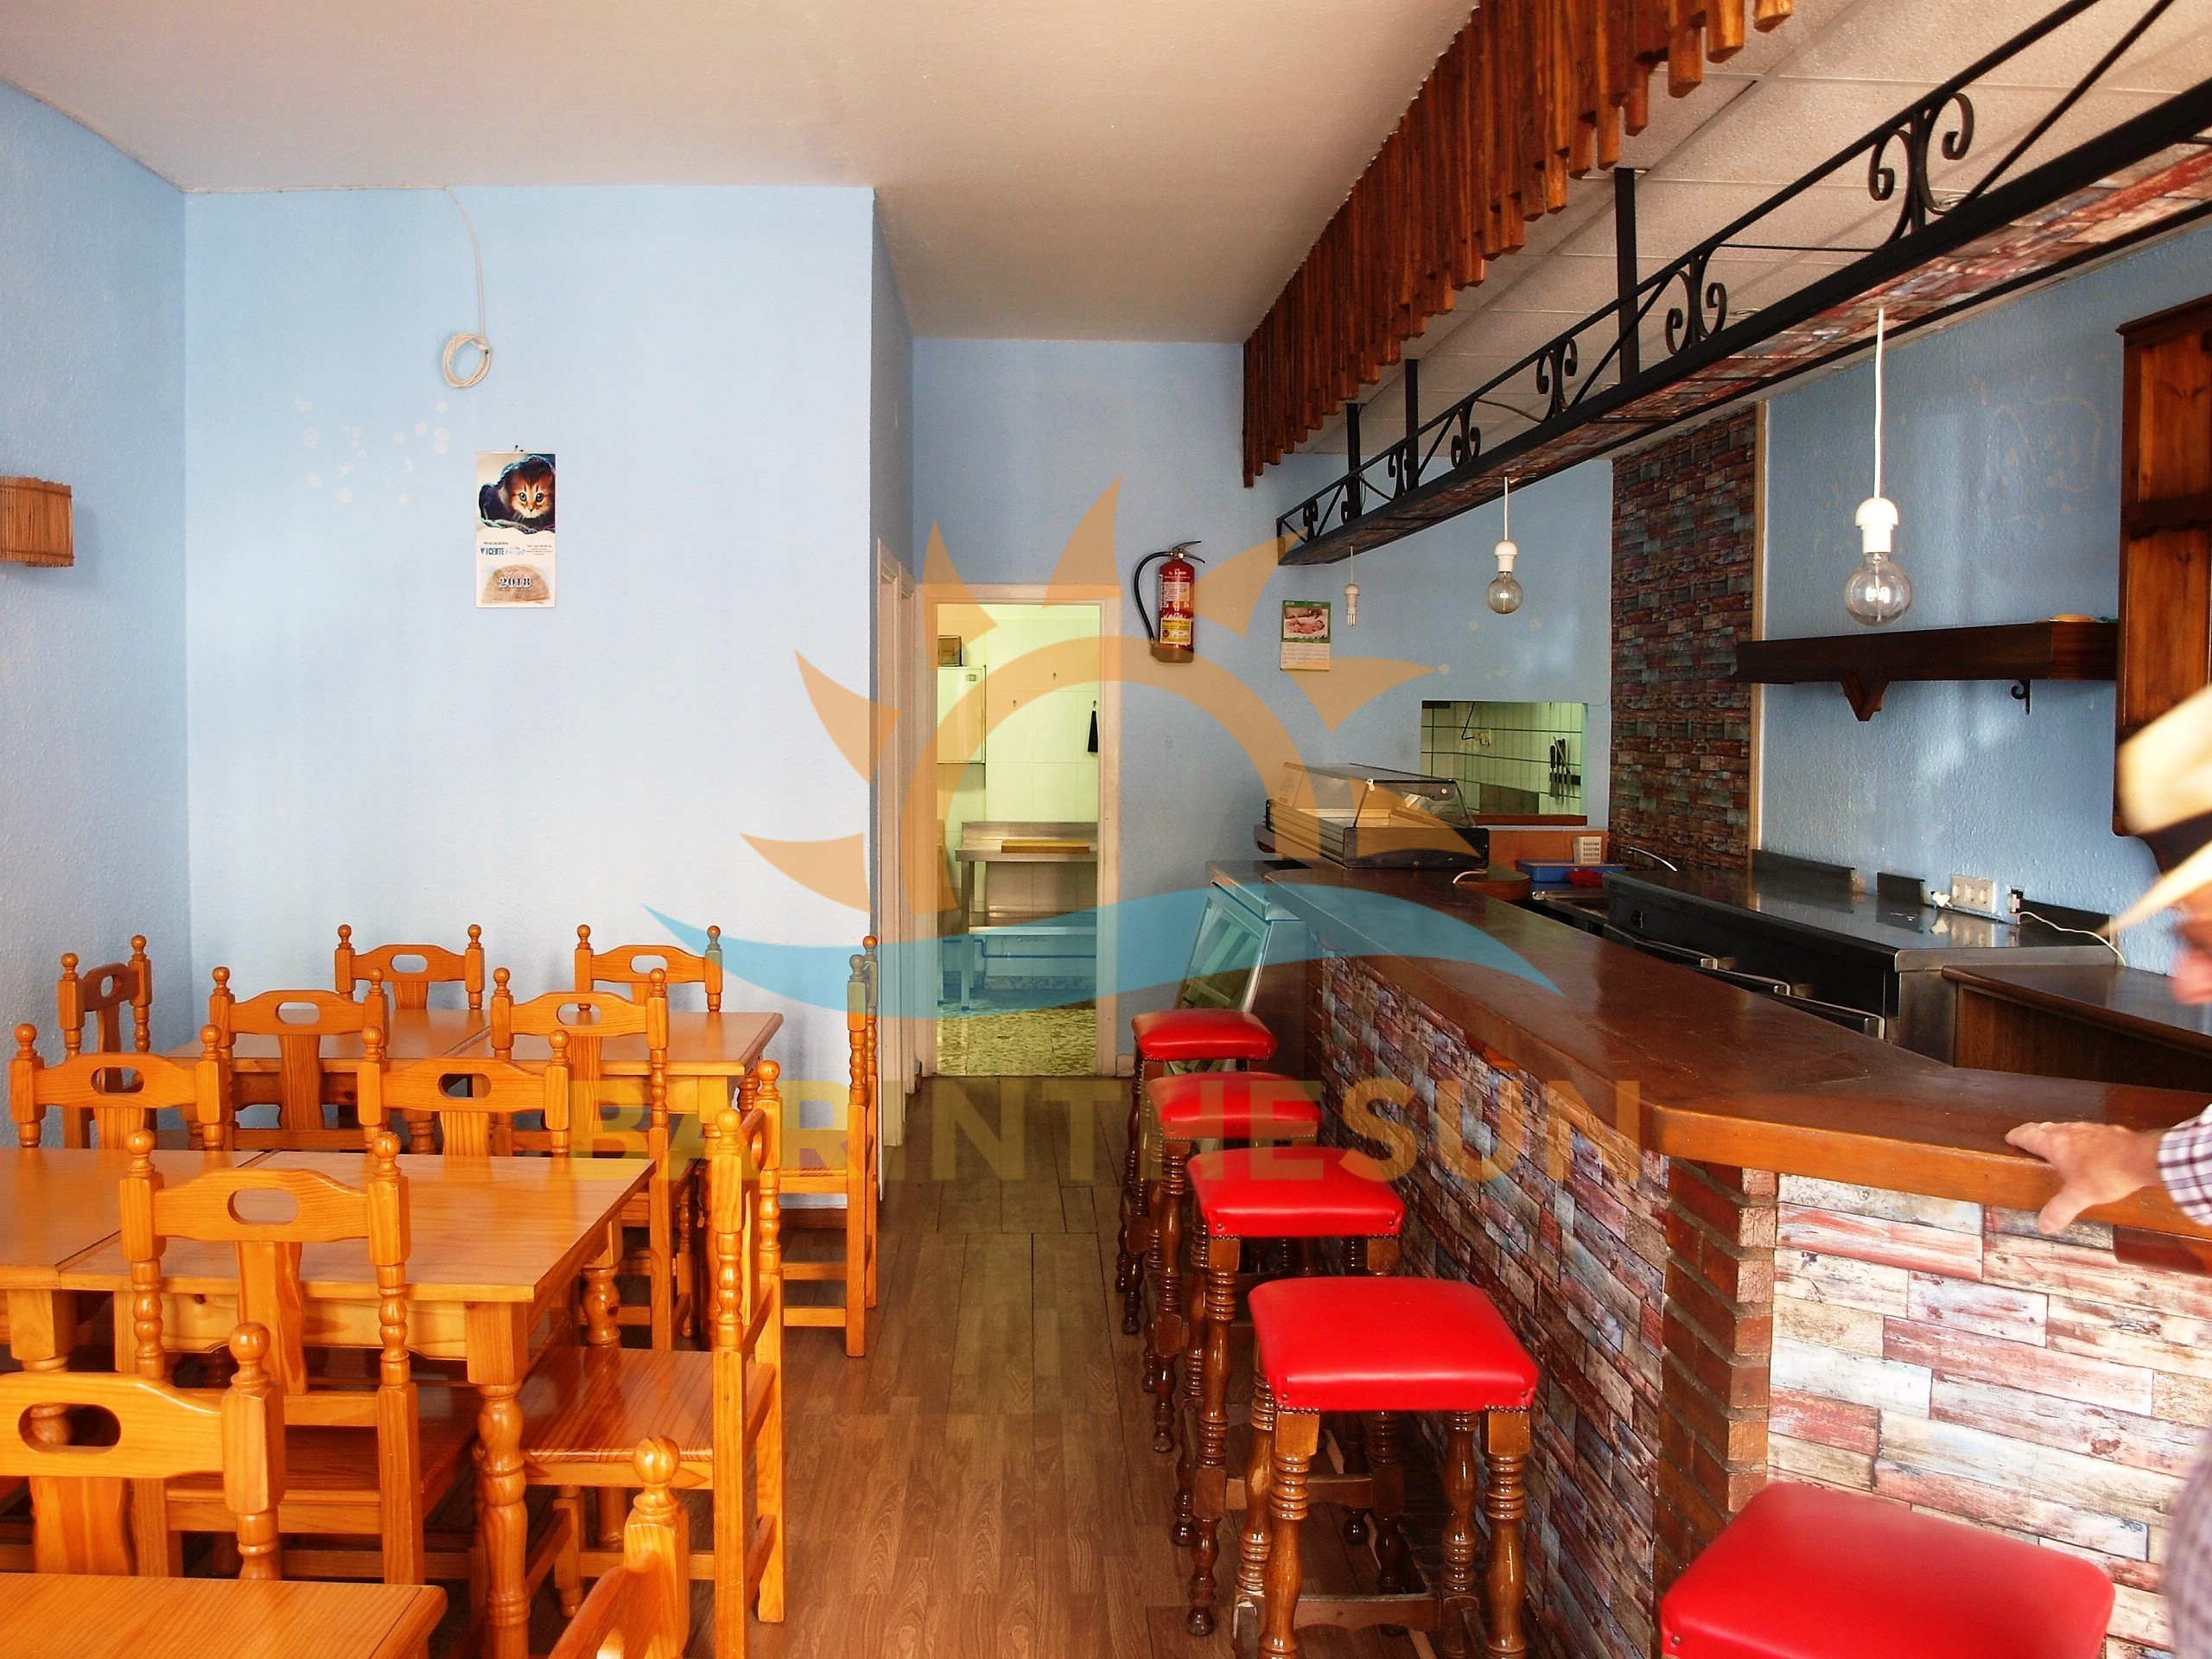 Cafe Bars For Rent in Fuengirola on The Costa del Sol, Bars For Rent in Spain